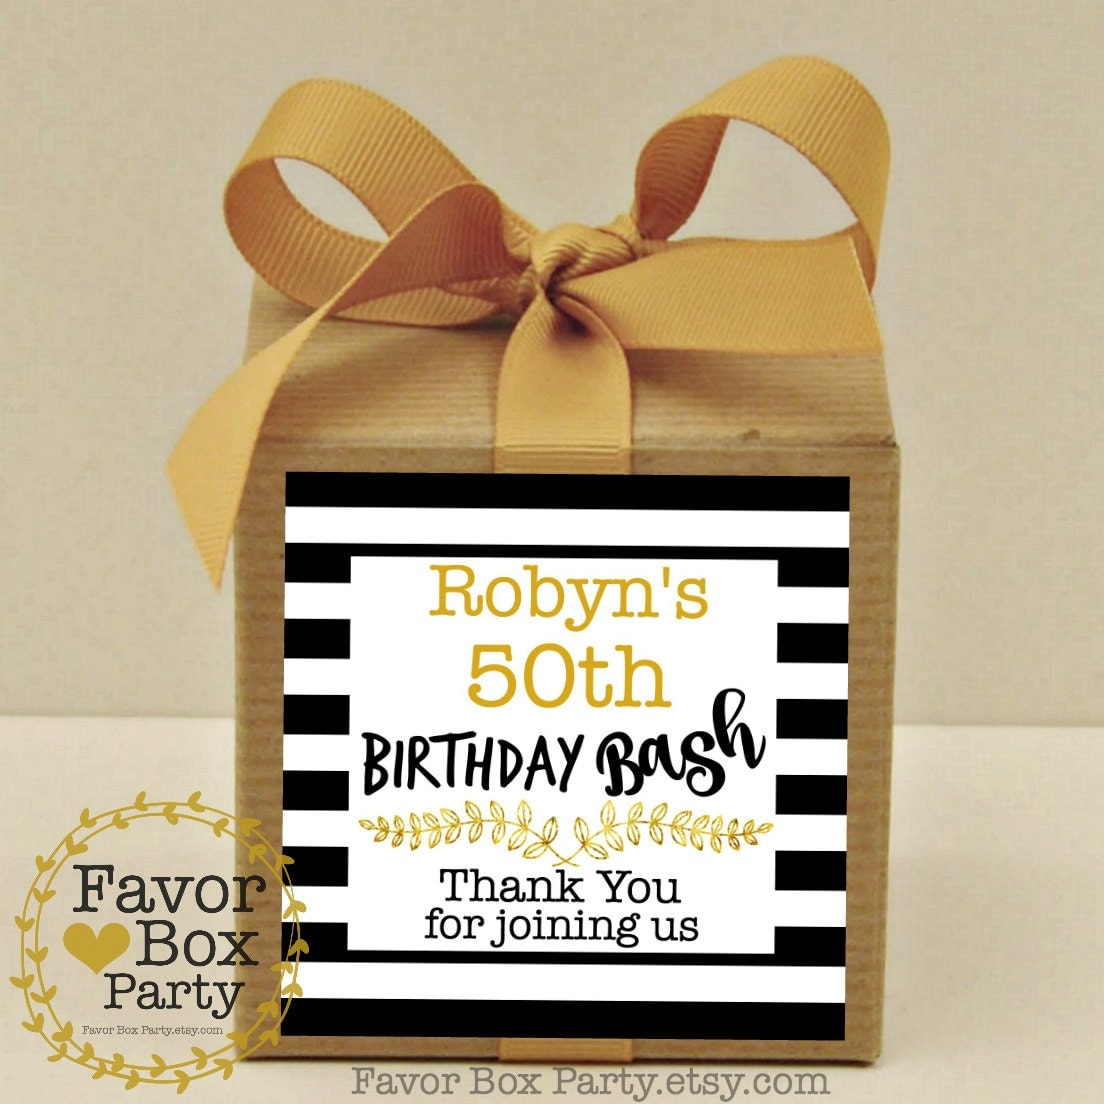 Personalized Party Favor Boxes Birthday : Birthday party bash favor boxes personalized labels